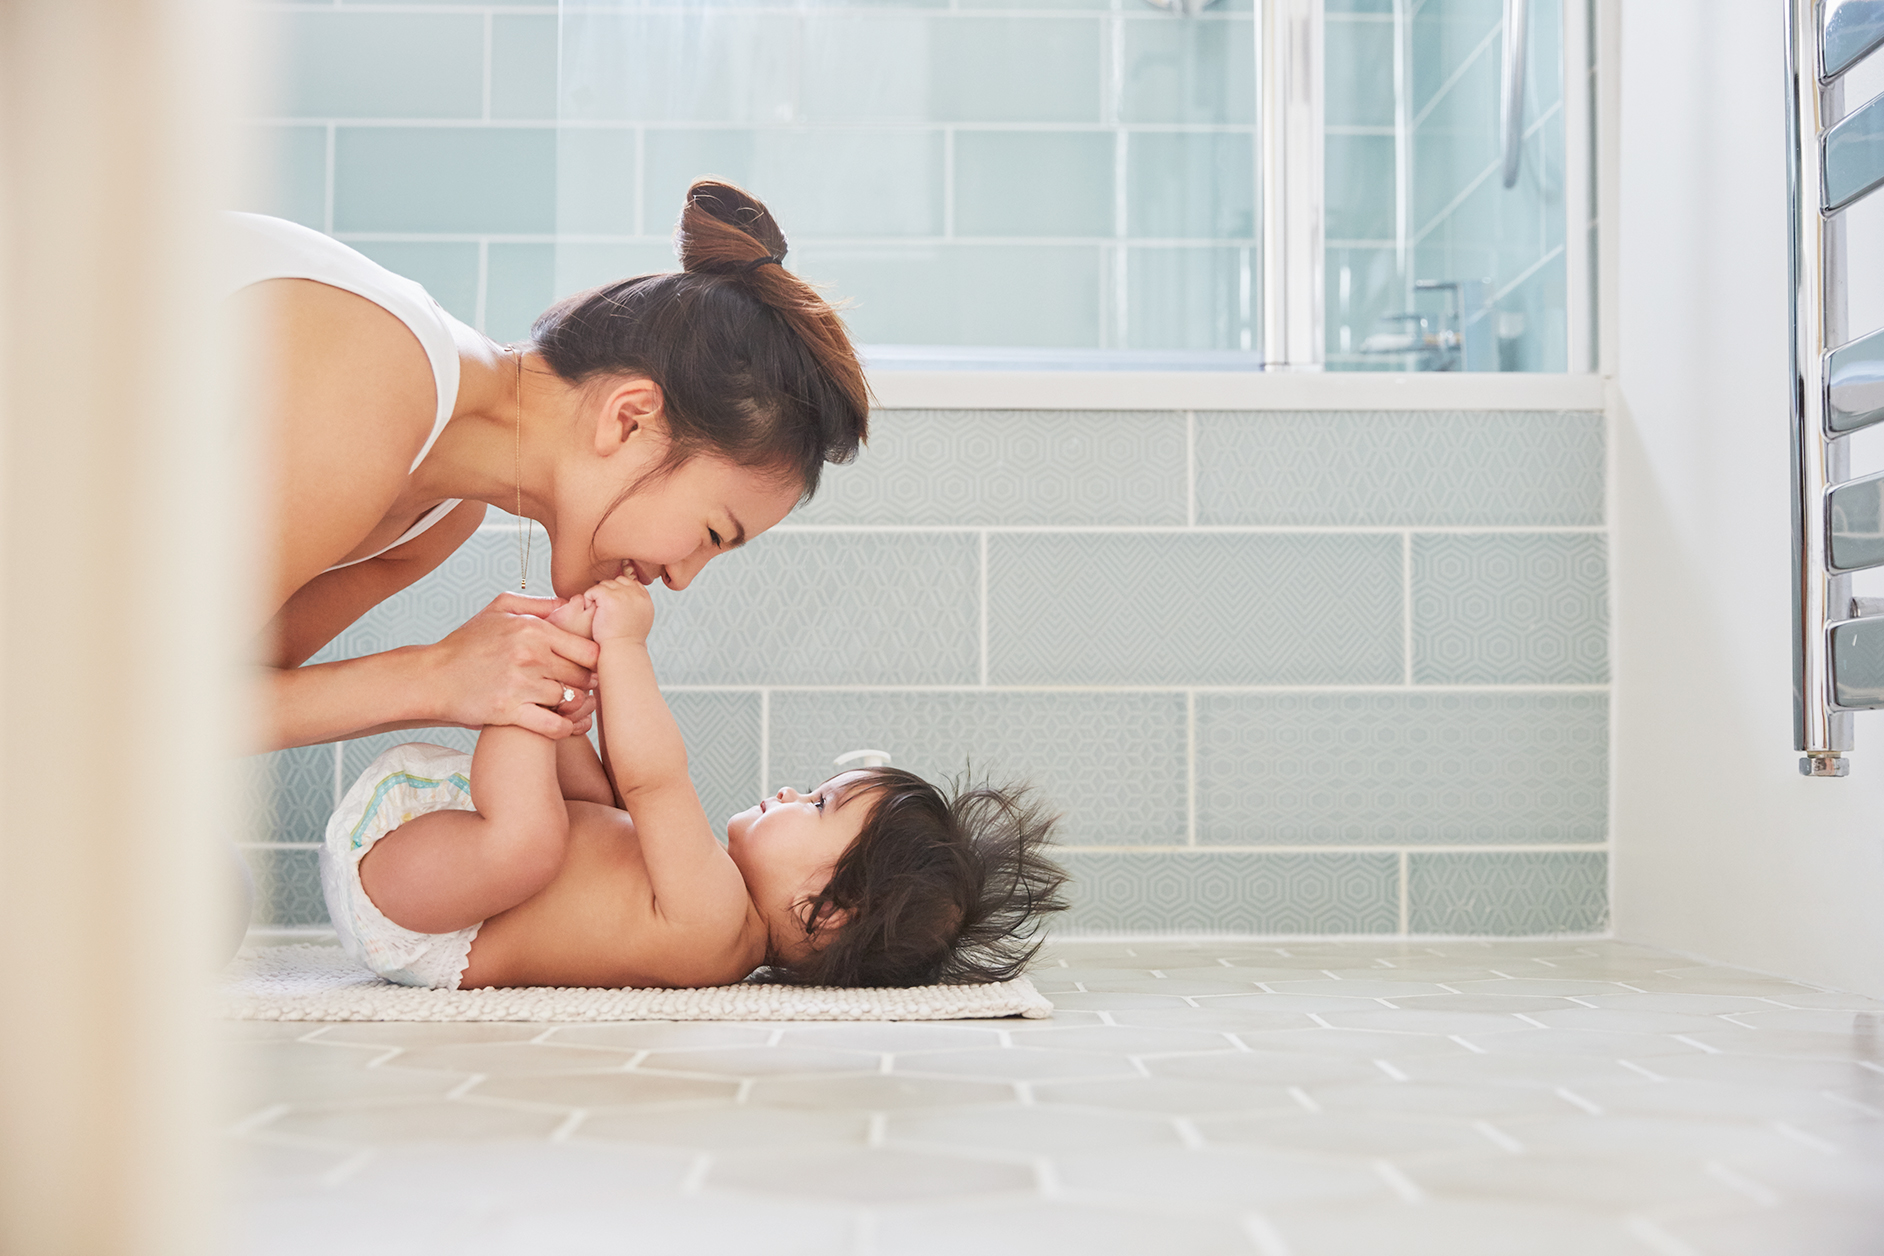 Mother with baby on bathroom floor